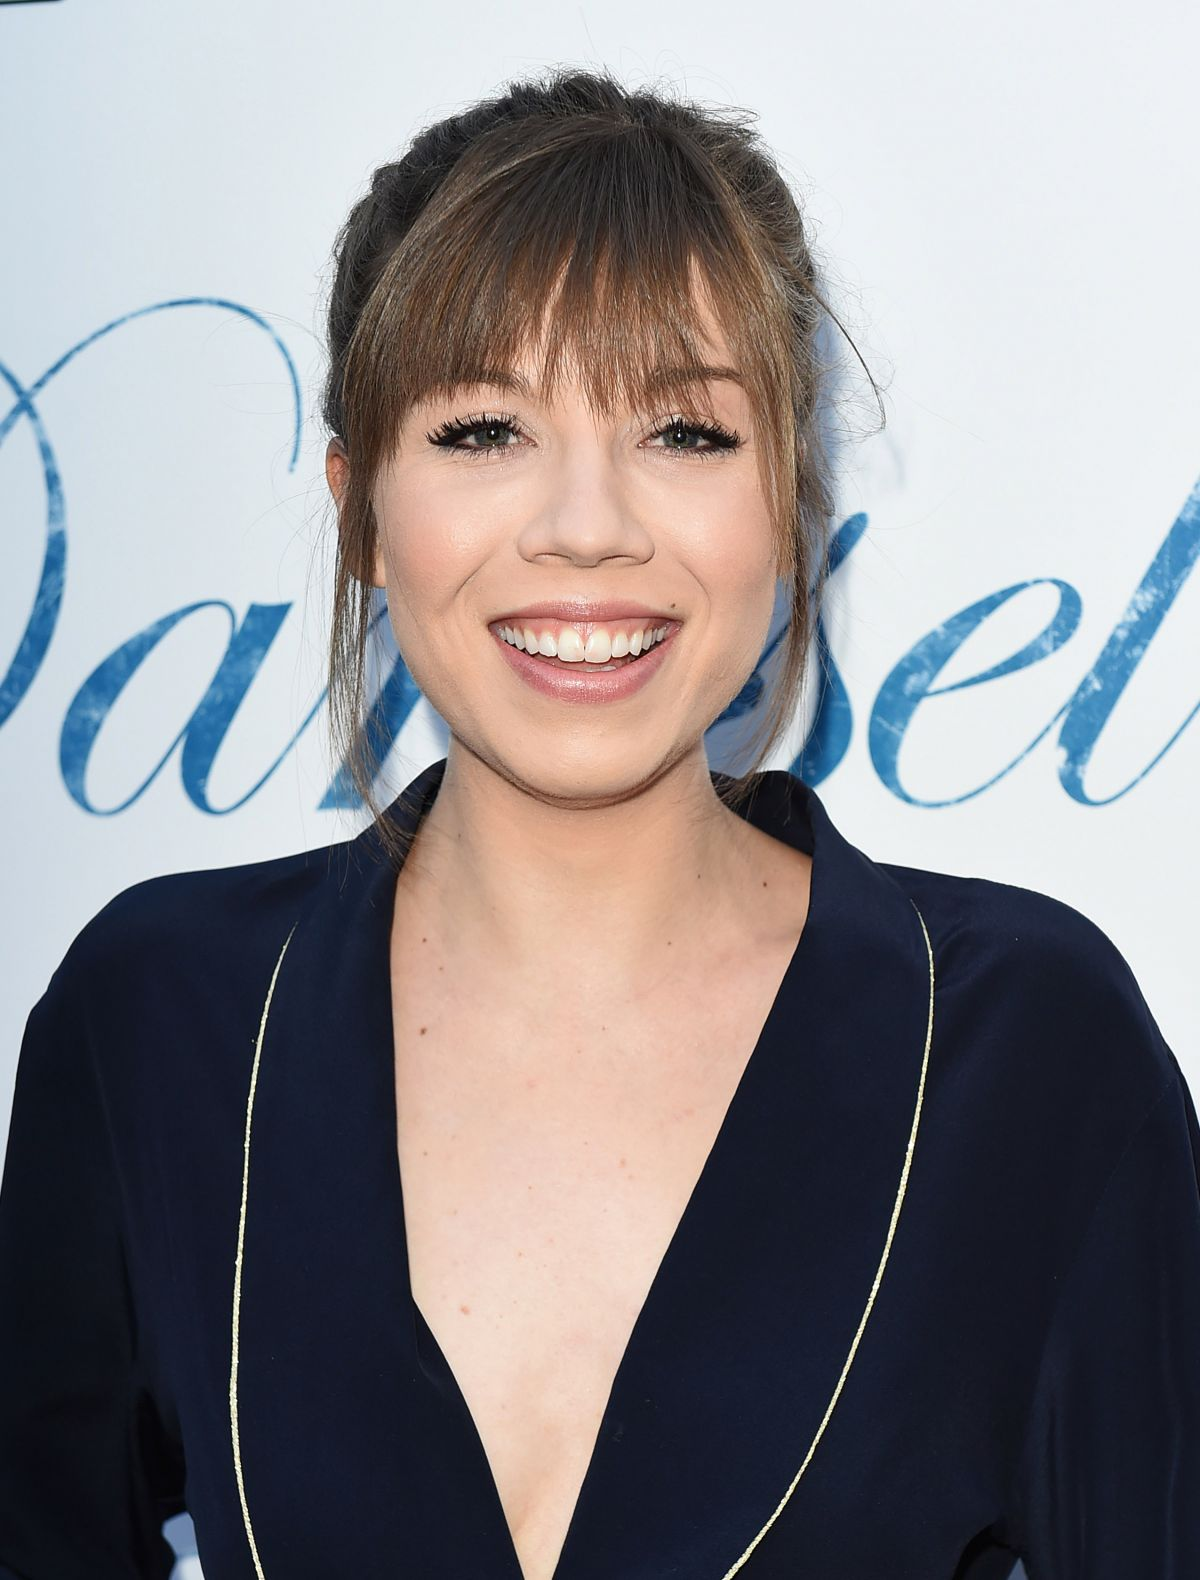 JENNETTE MCCURDY at Damsel Premiere in Los Angeles 06/13